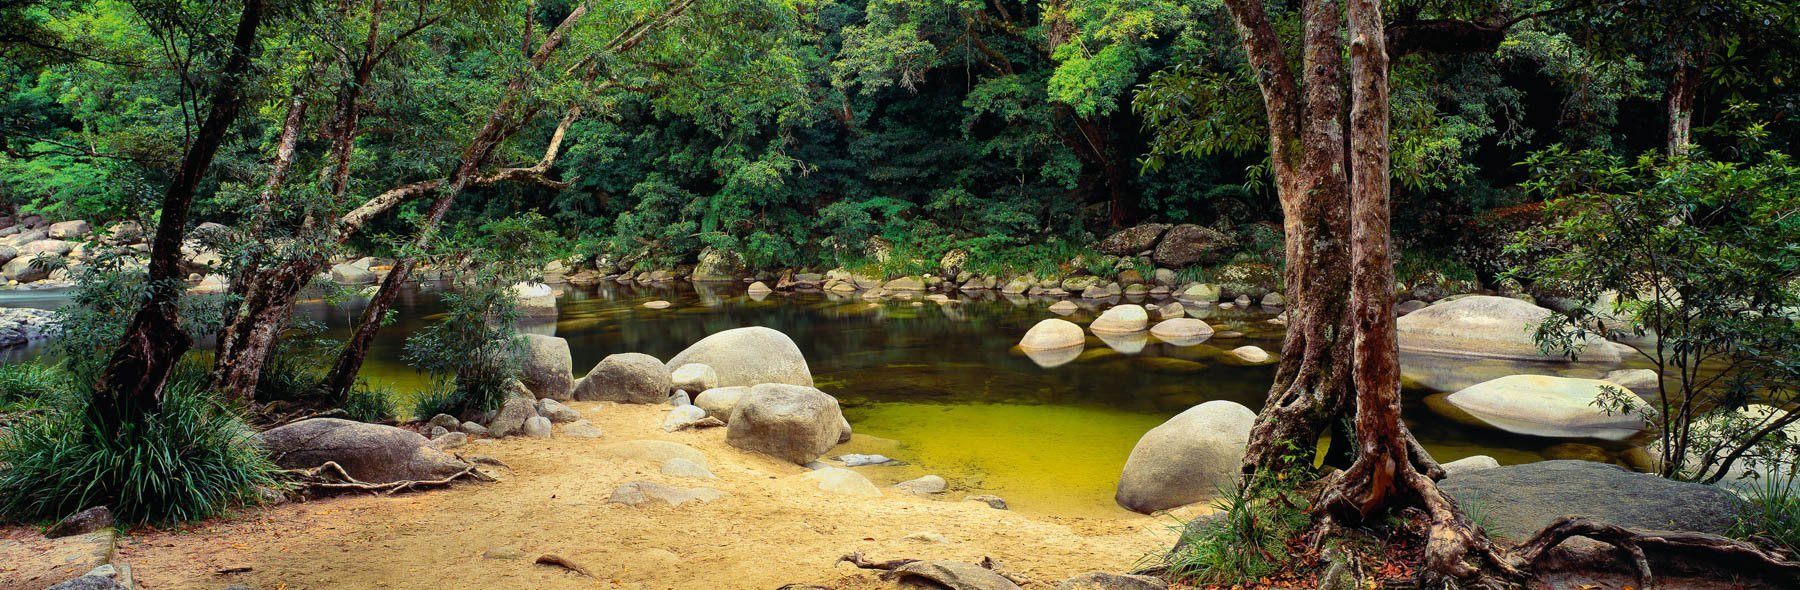 The Mossman River tumbling gently over boulders into a refreshing swimming hole, Qld, Australia.